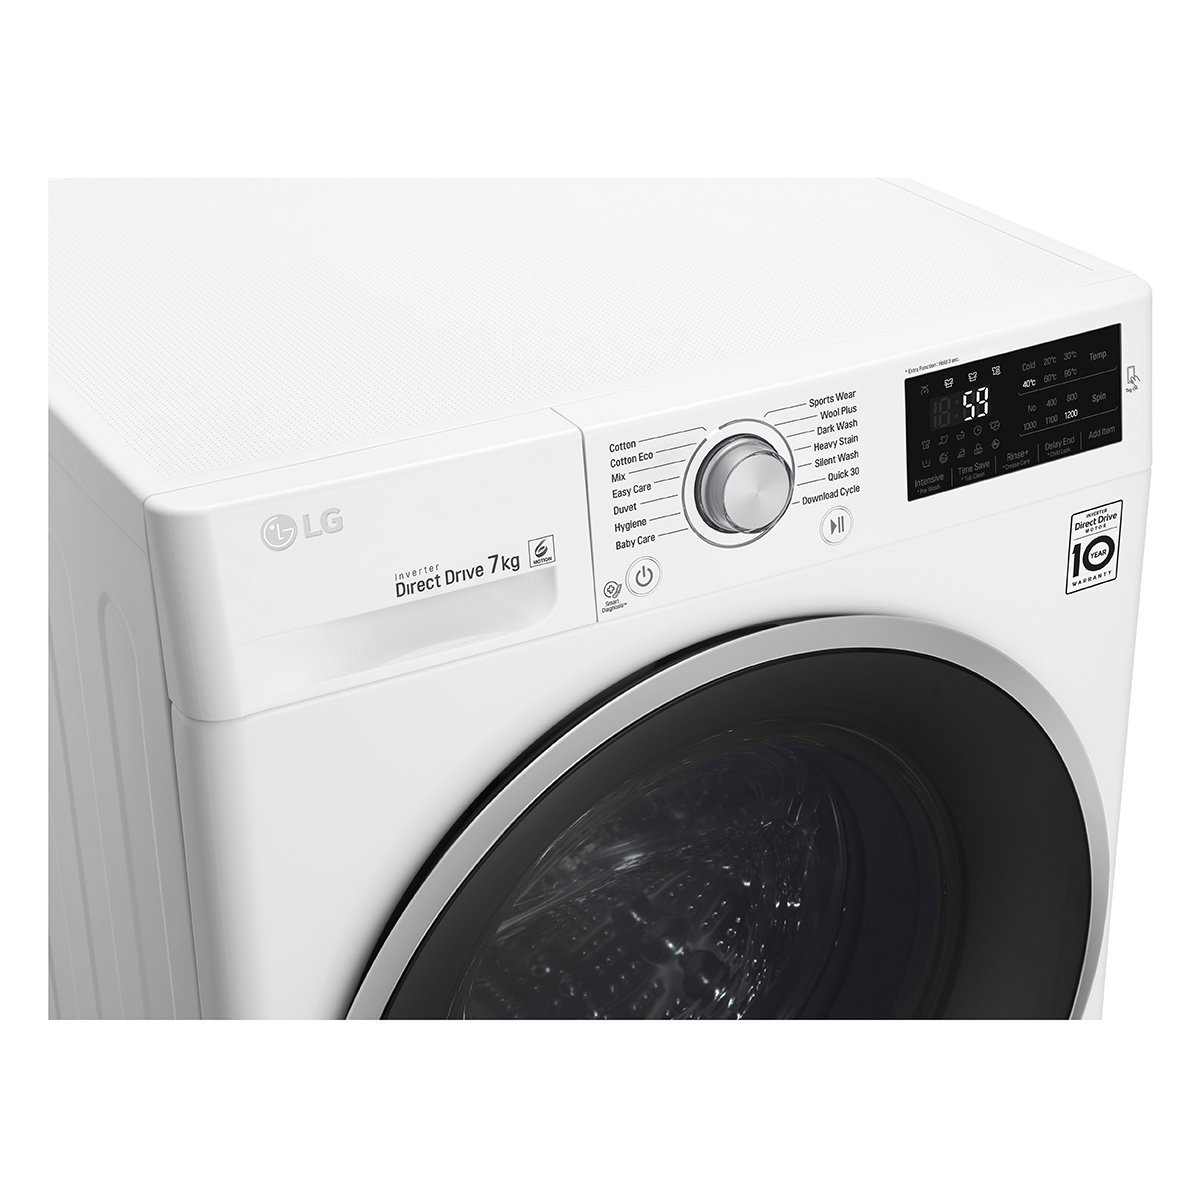 LG WD1207NCW 7kg Front Load Washer